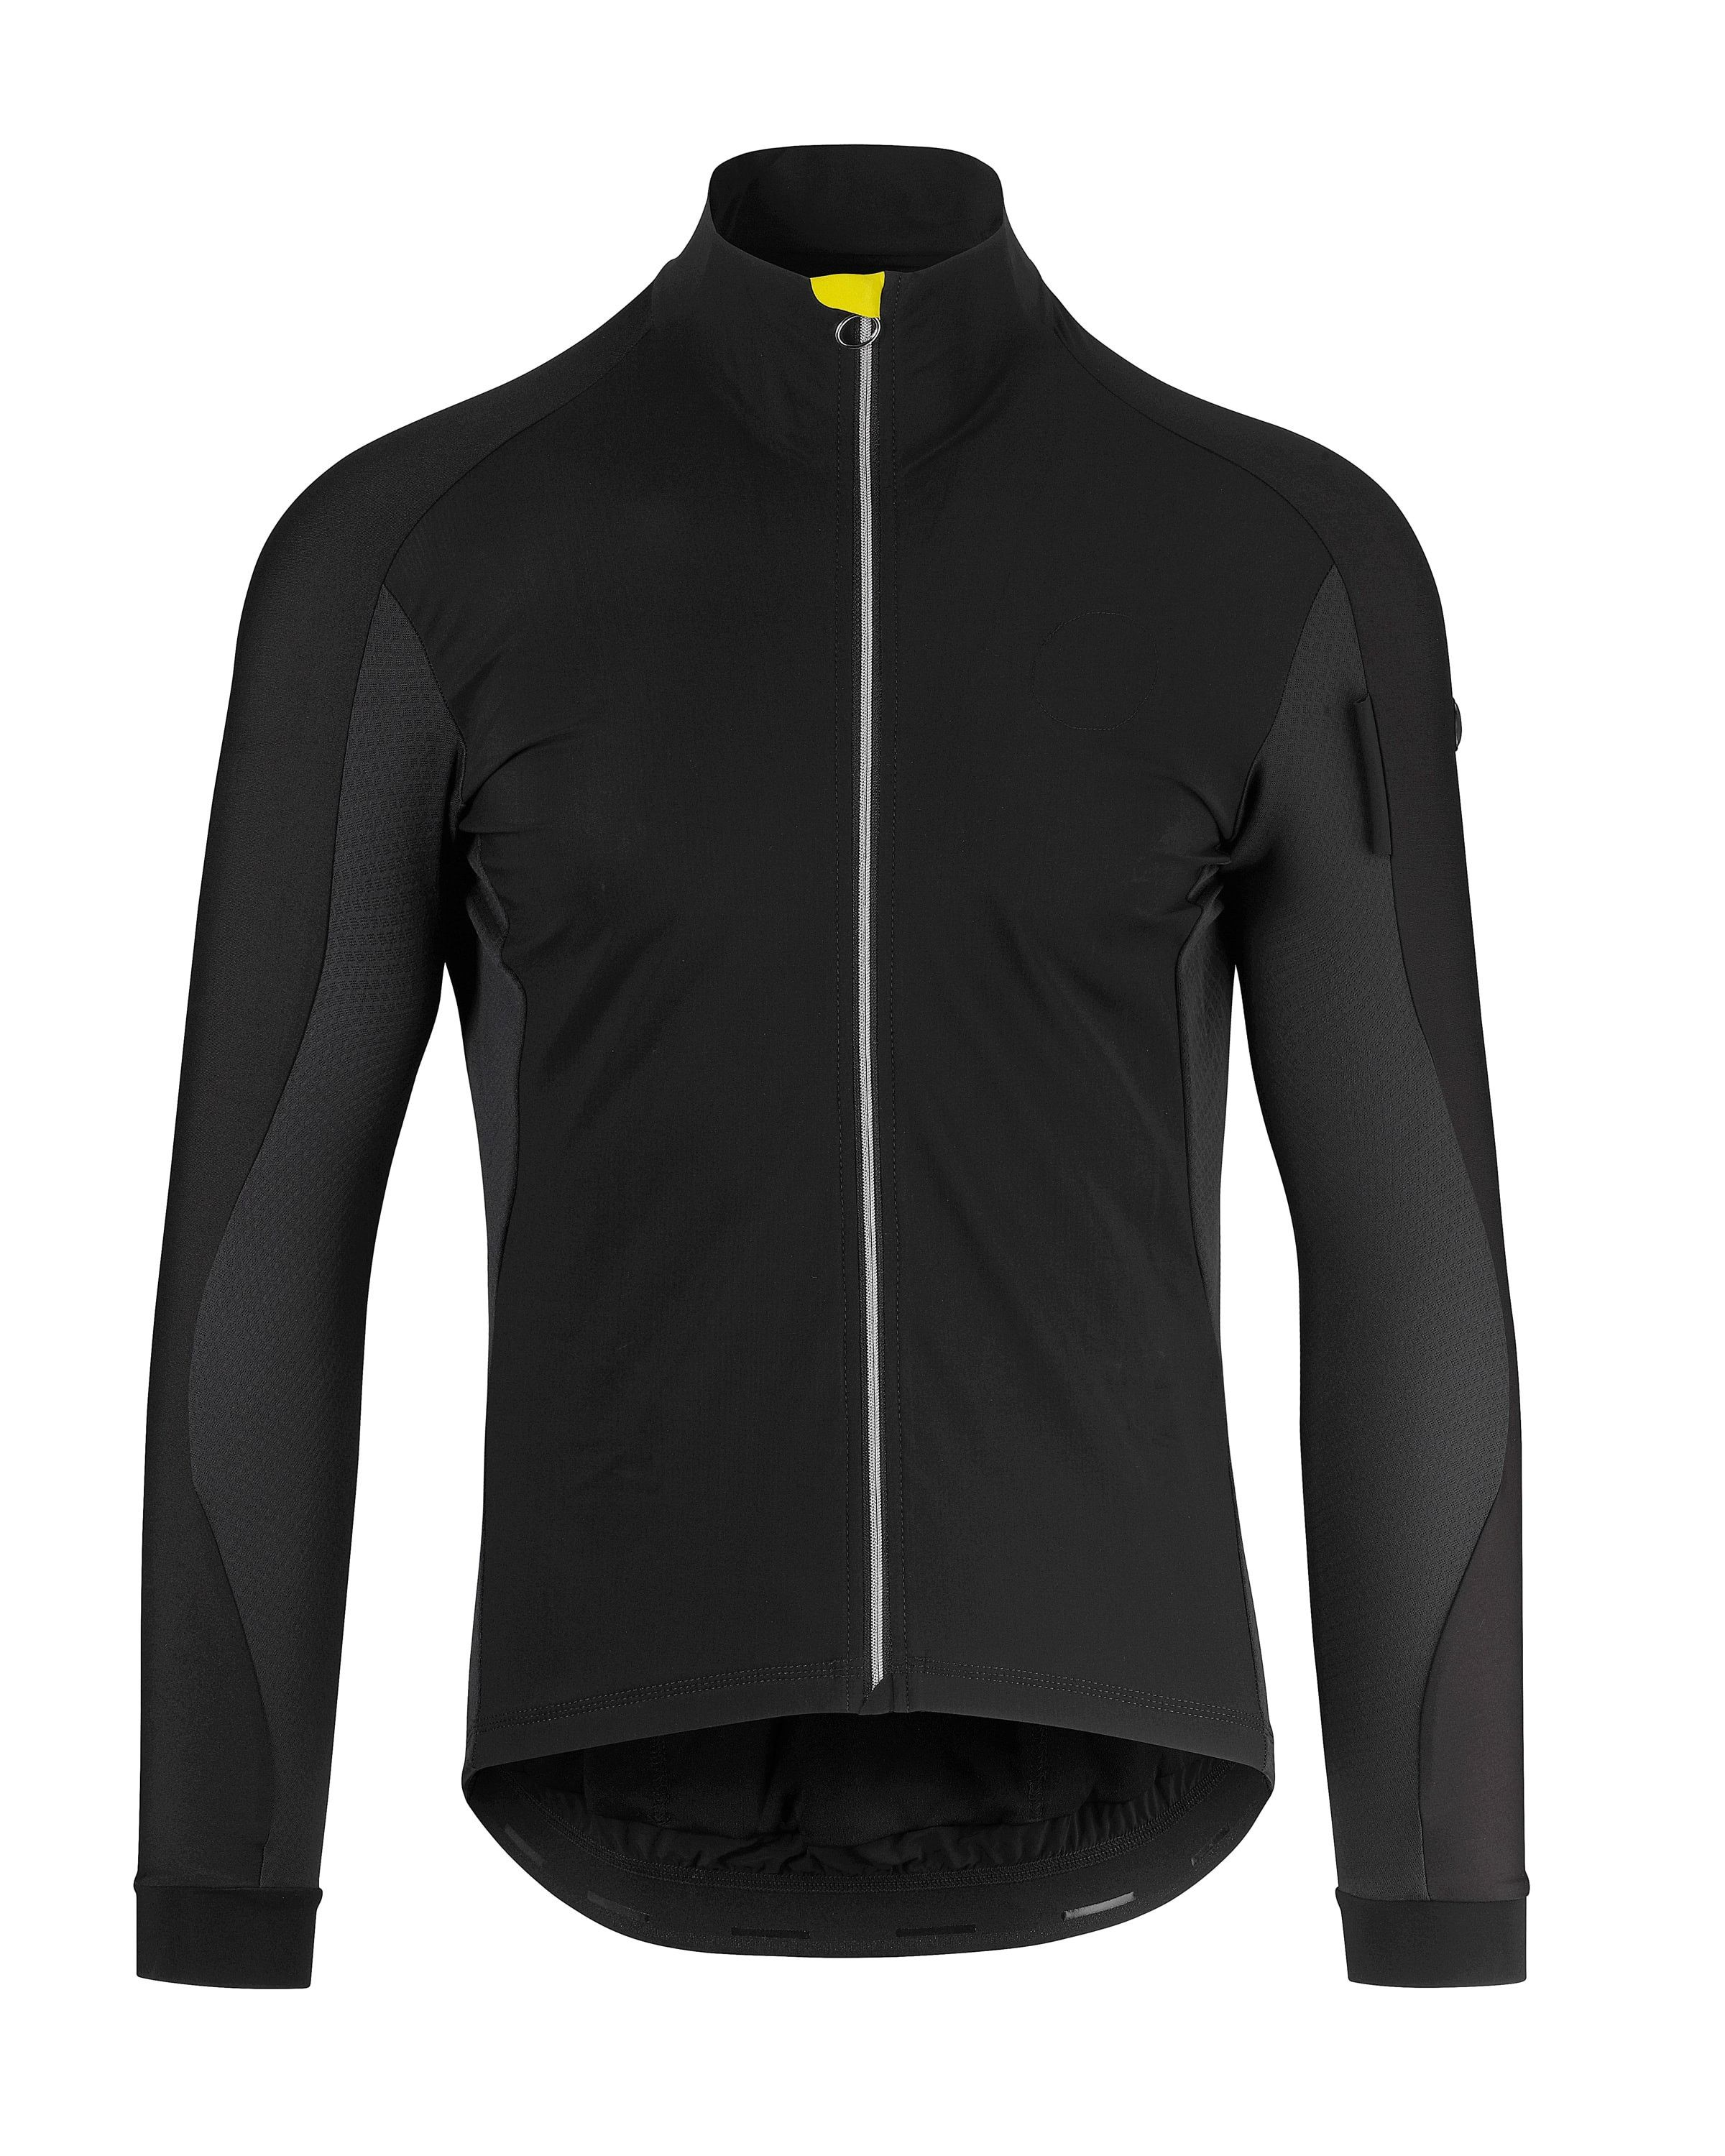 733410bff ASSOS IJ.Intermediate S7 Jacket-Prof Black-XLG - Essentially a summer jersey